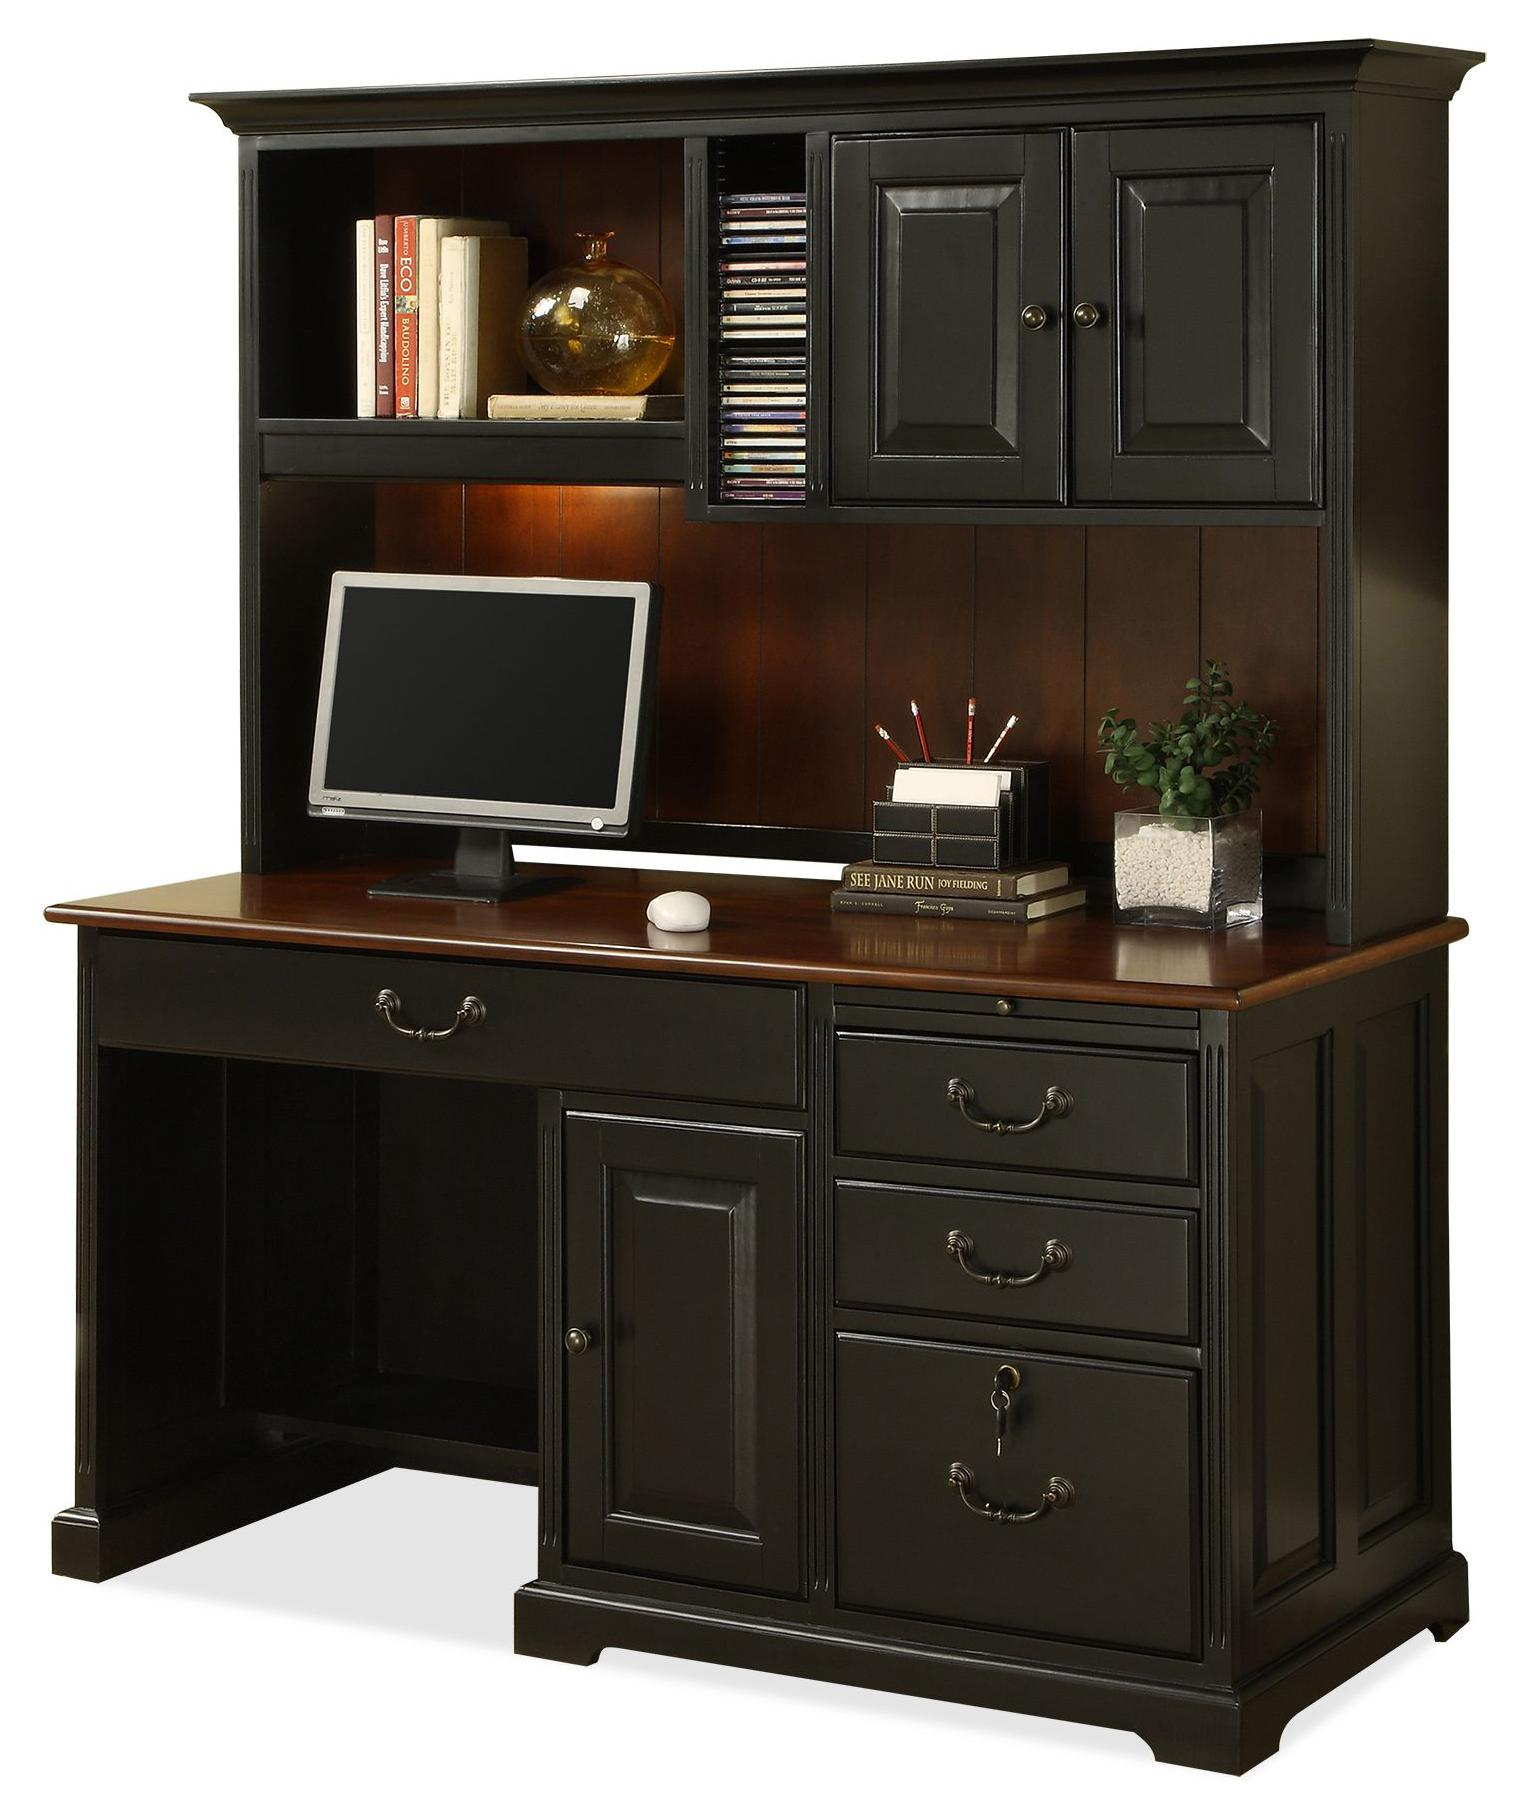 Riverside Furniture Bridgeport Single Pedestal Computer Desk With Storage Hutch Ahfa Dealer Locator